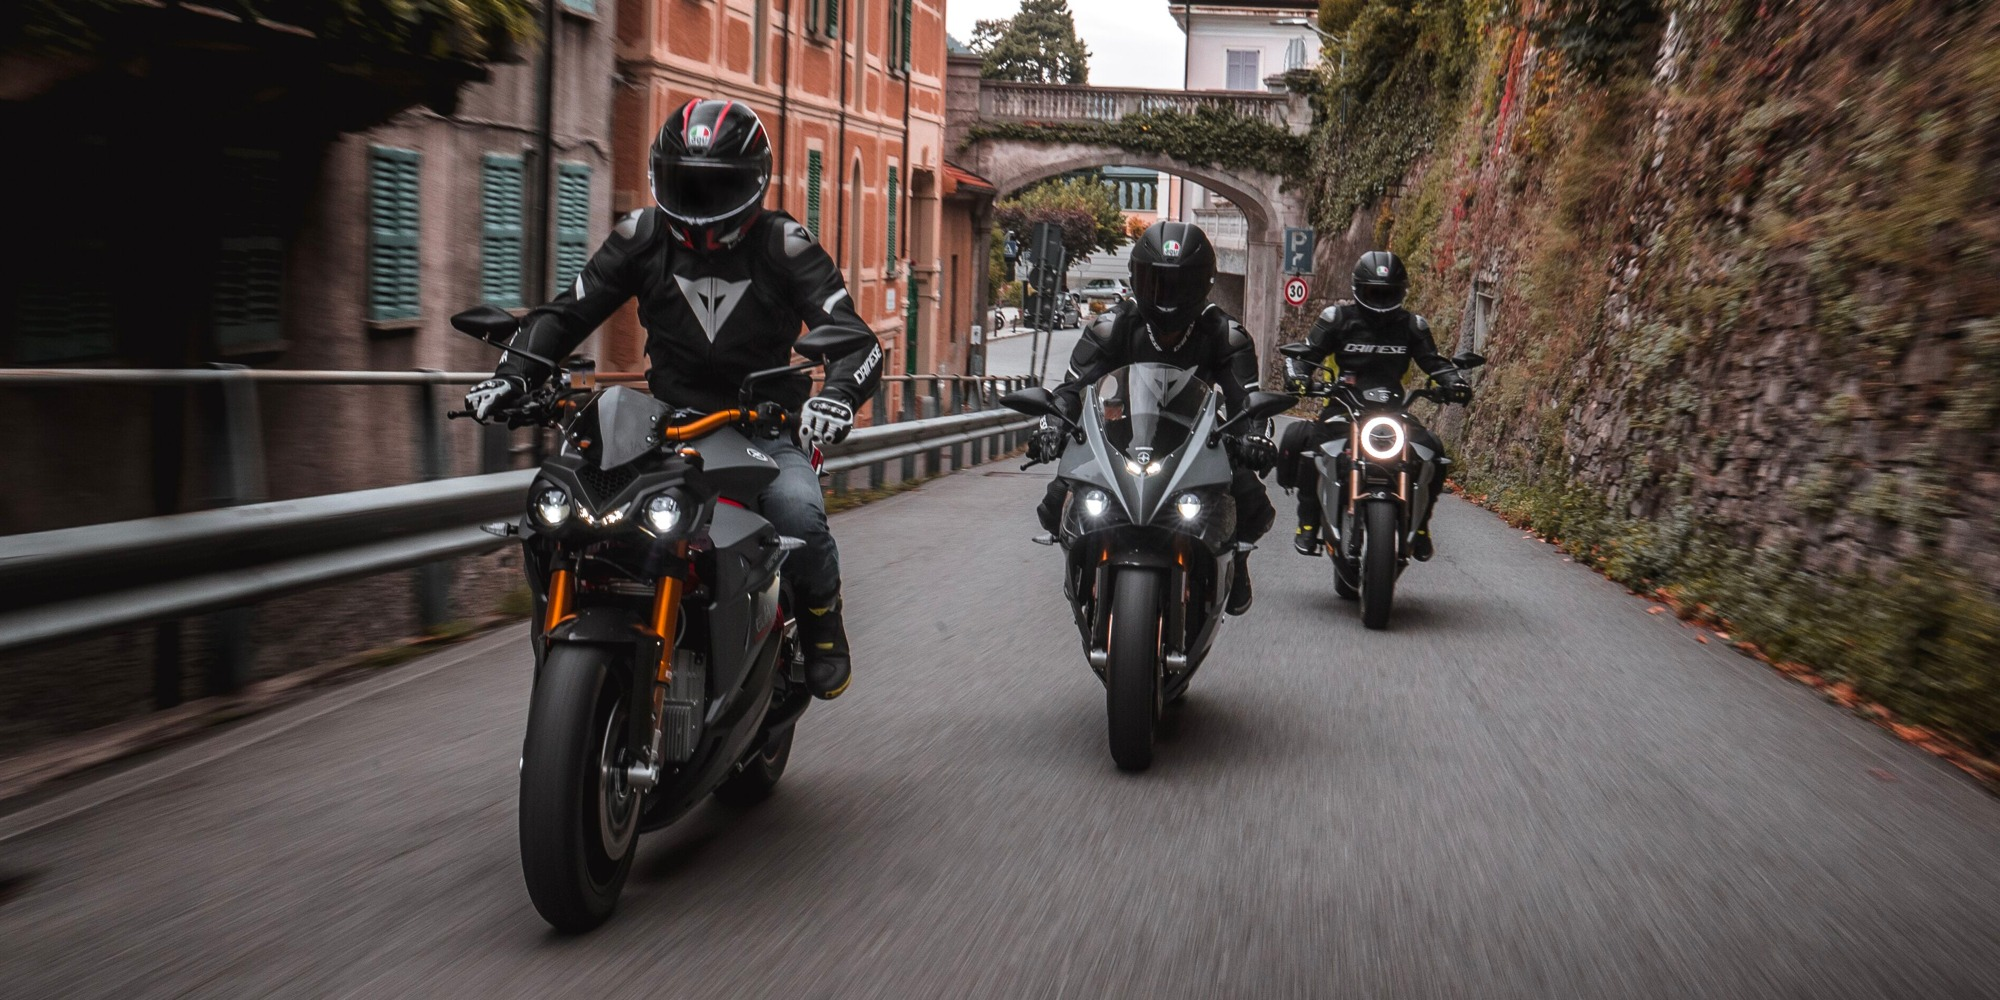 Energica's sales are booming, surpassing 2019 sales in first 2 months of 2020 - Electrek